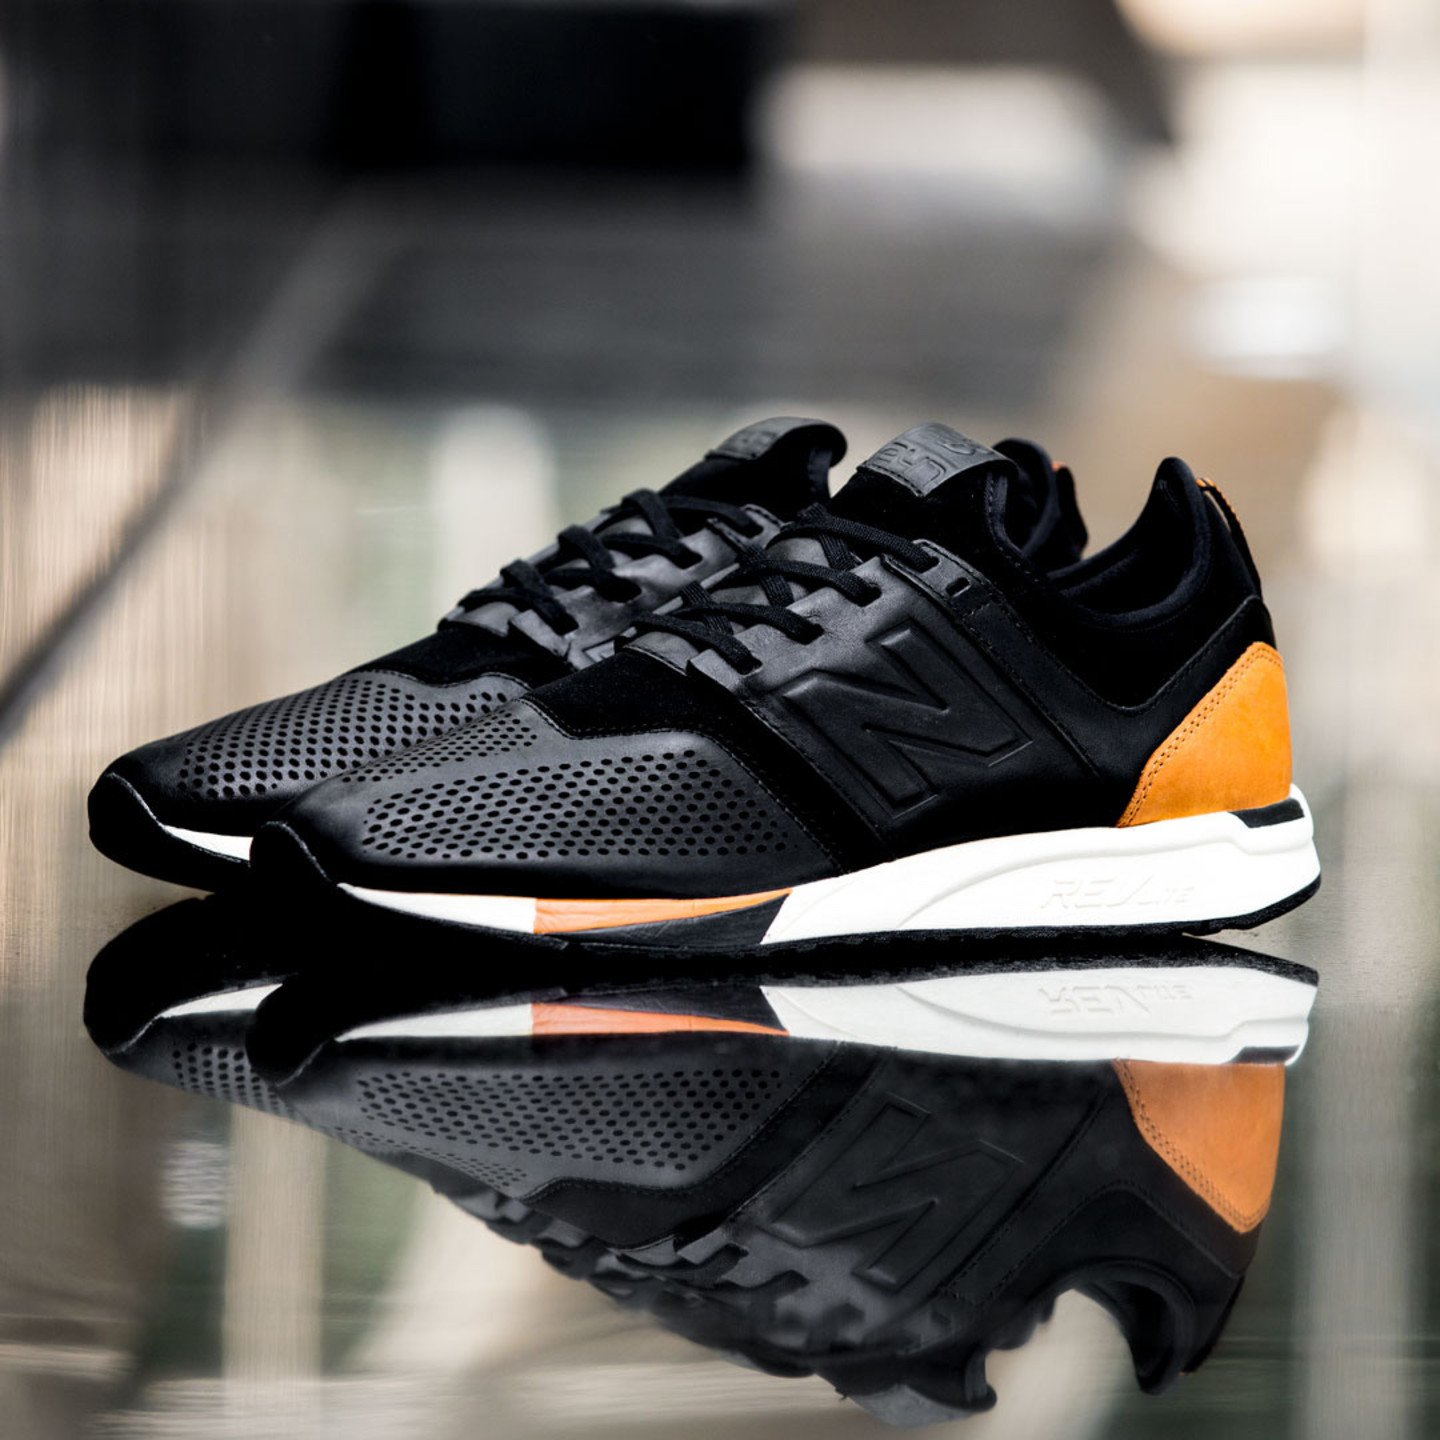 New Balance MRL 247 'Luxe Pack' Black / Brown / Cream MRL247BL-42.5